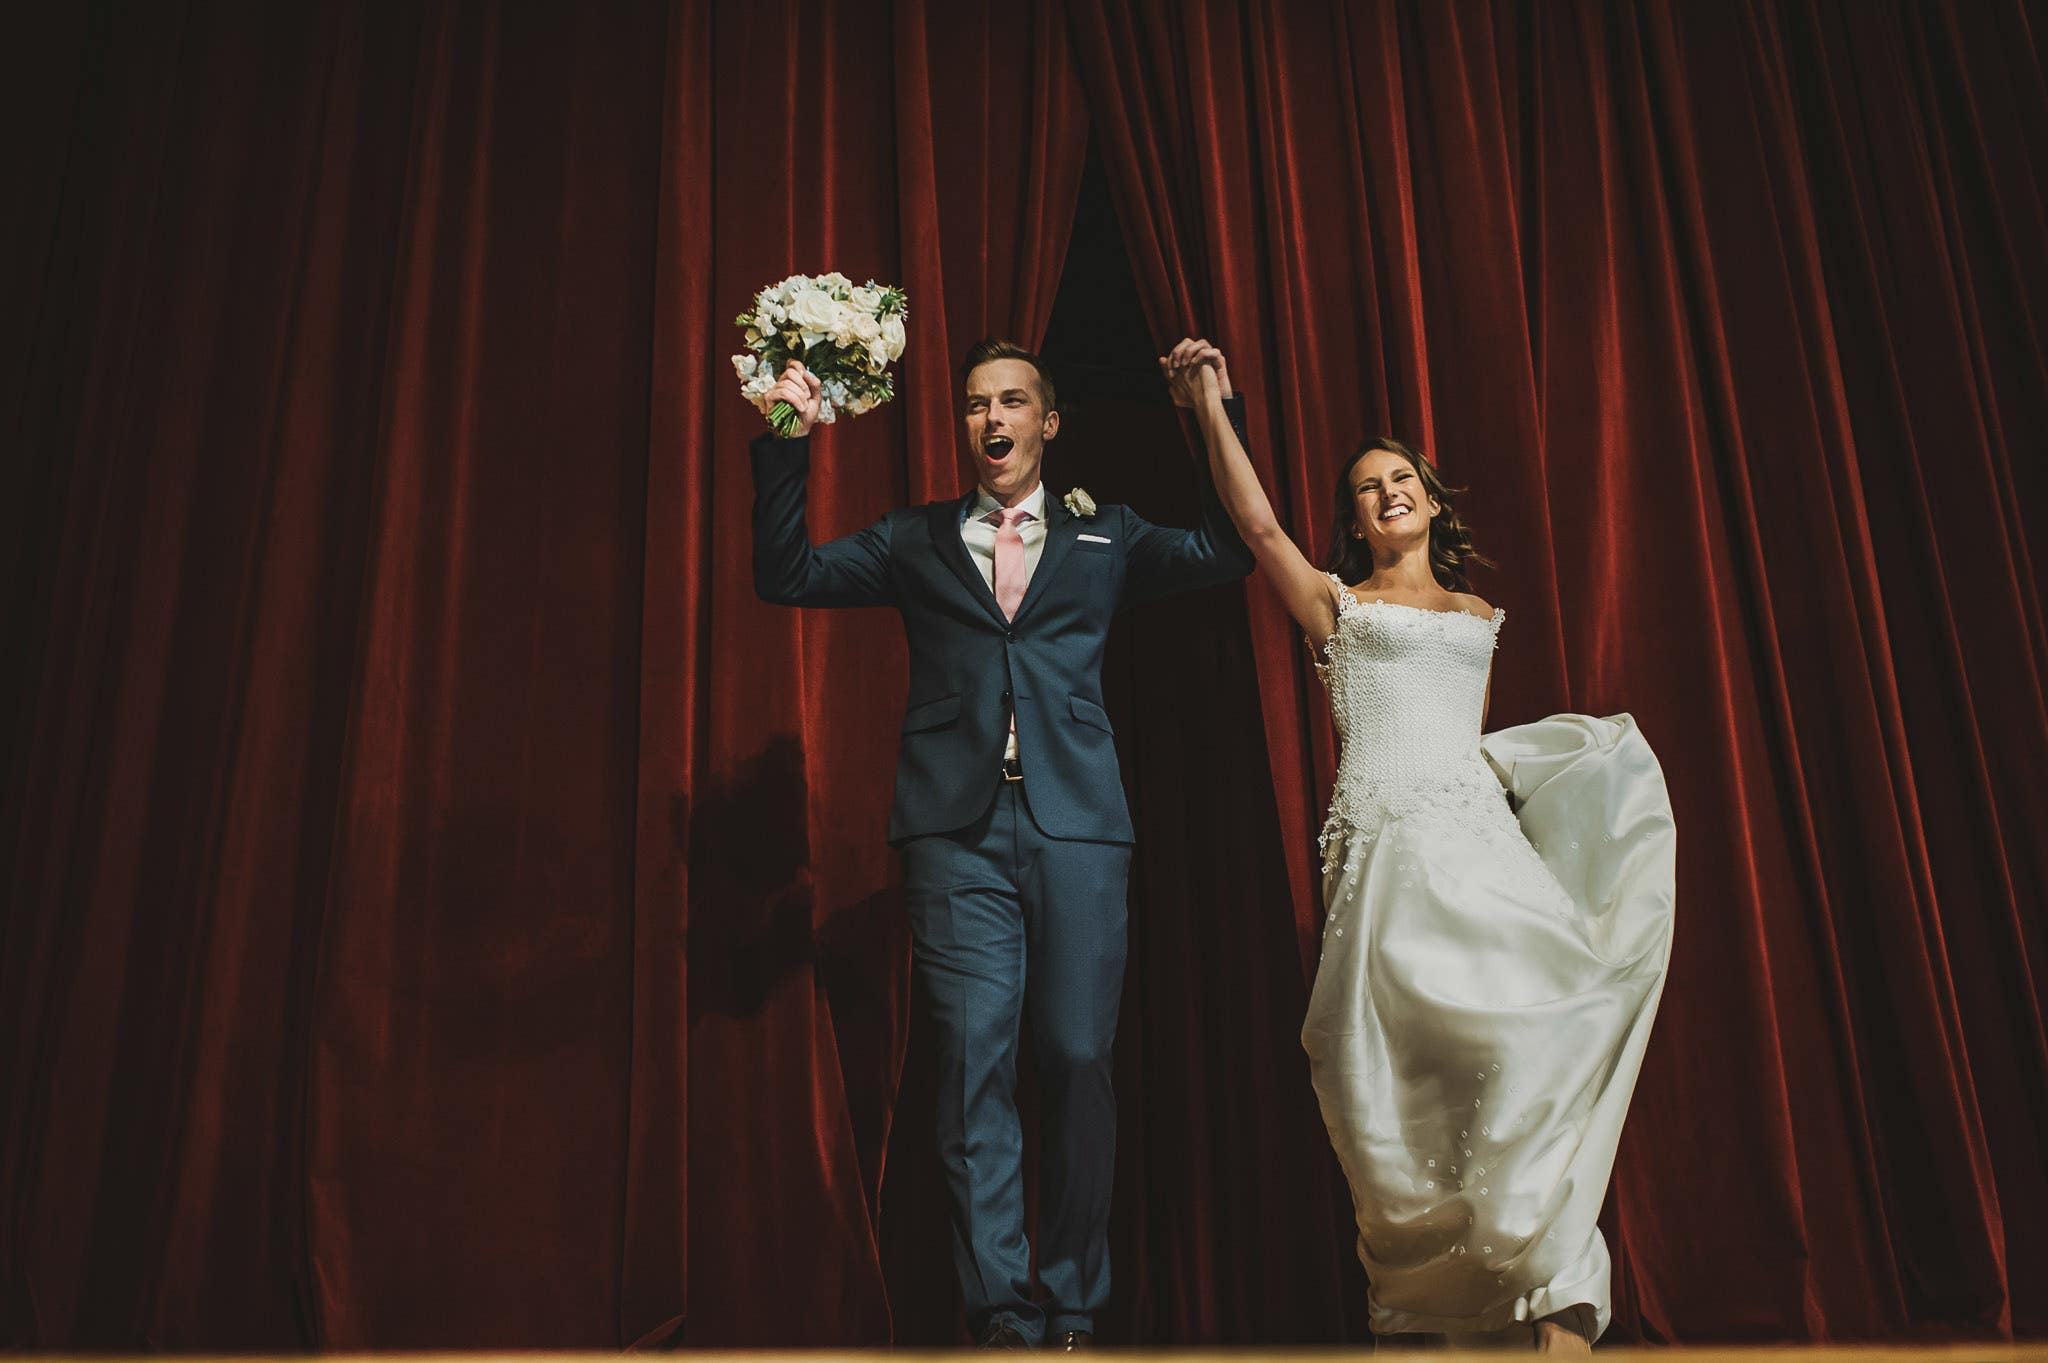 Top 5 wedding photography tips - Lucy Spartalis